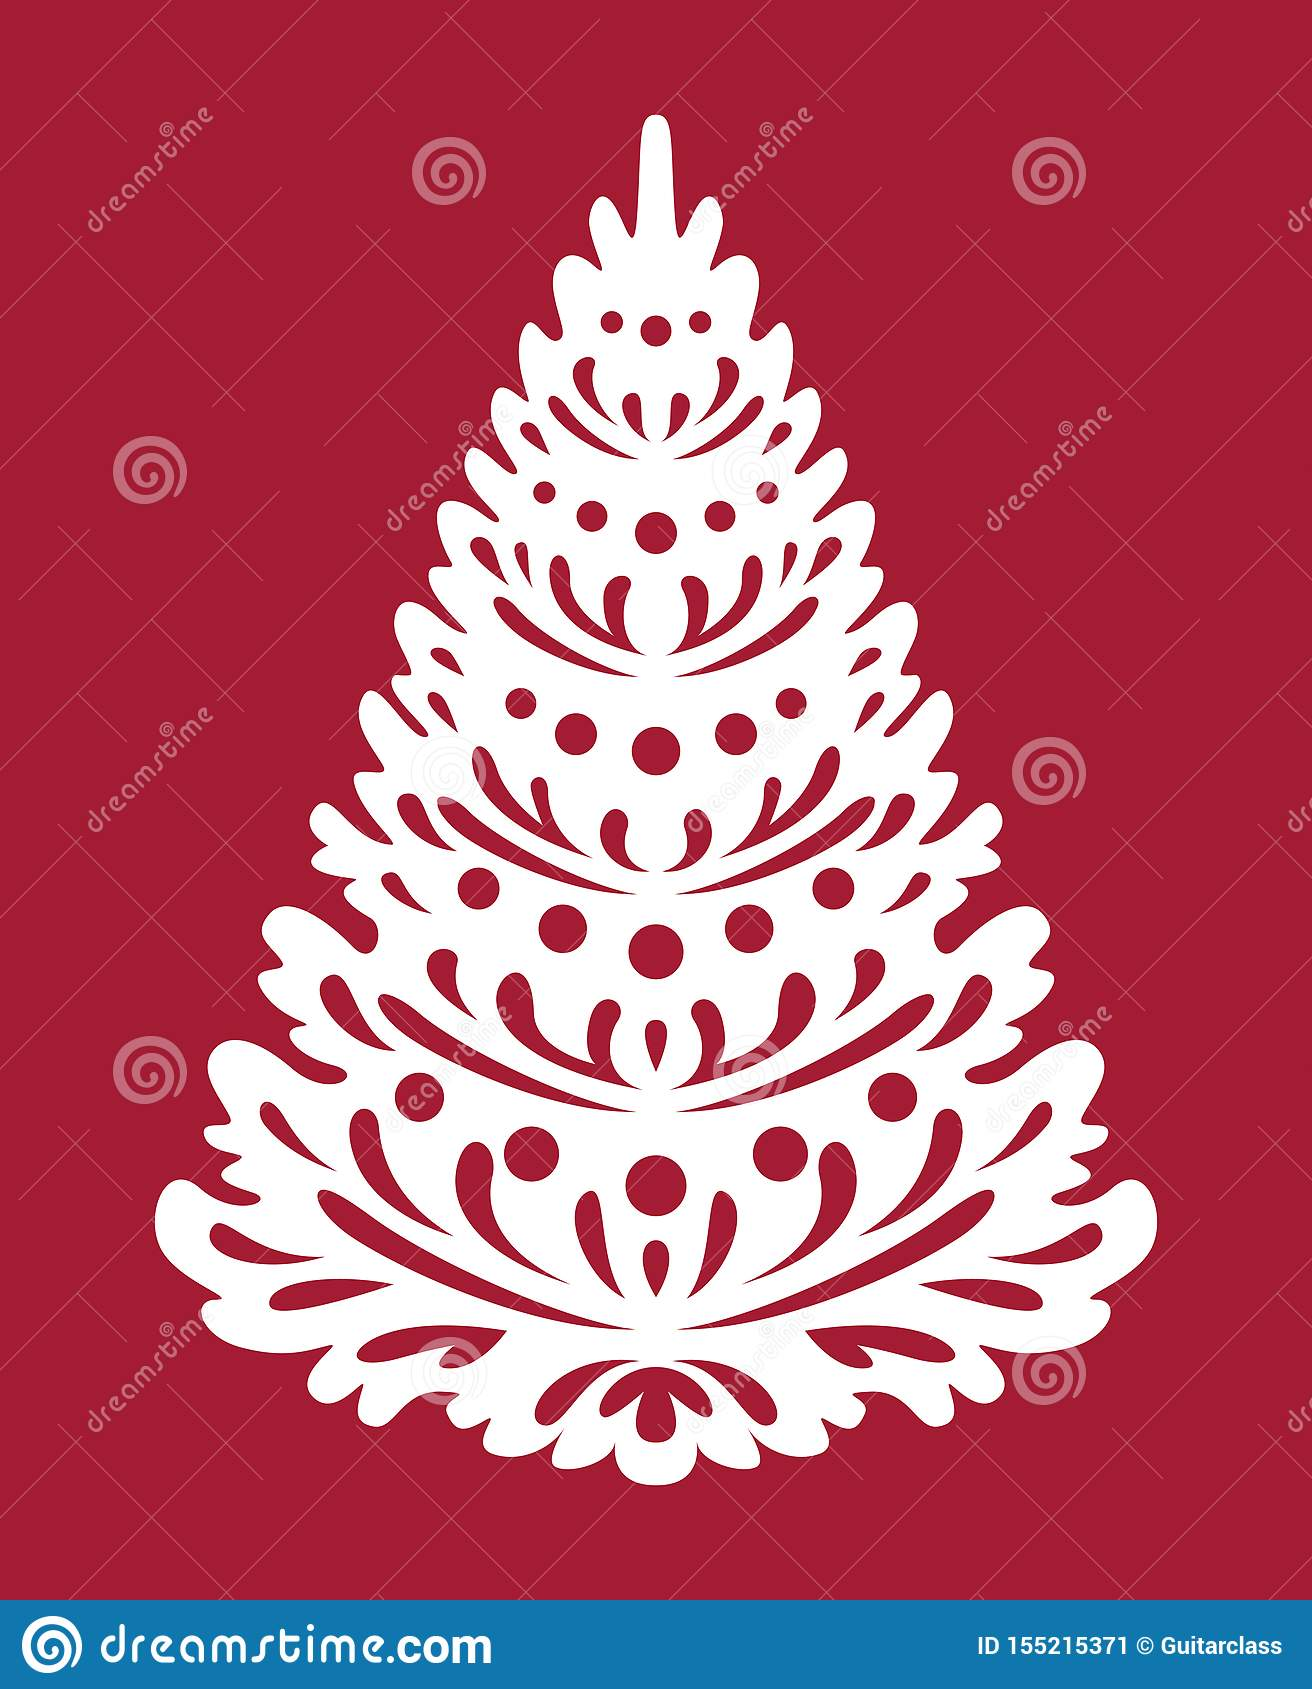 Christmas Tree Template Free from thumbs.dreamstime.com